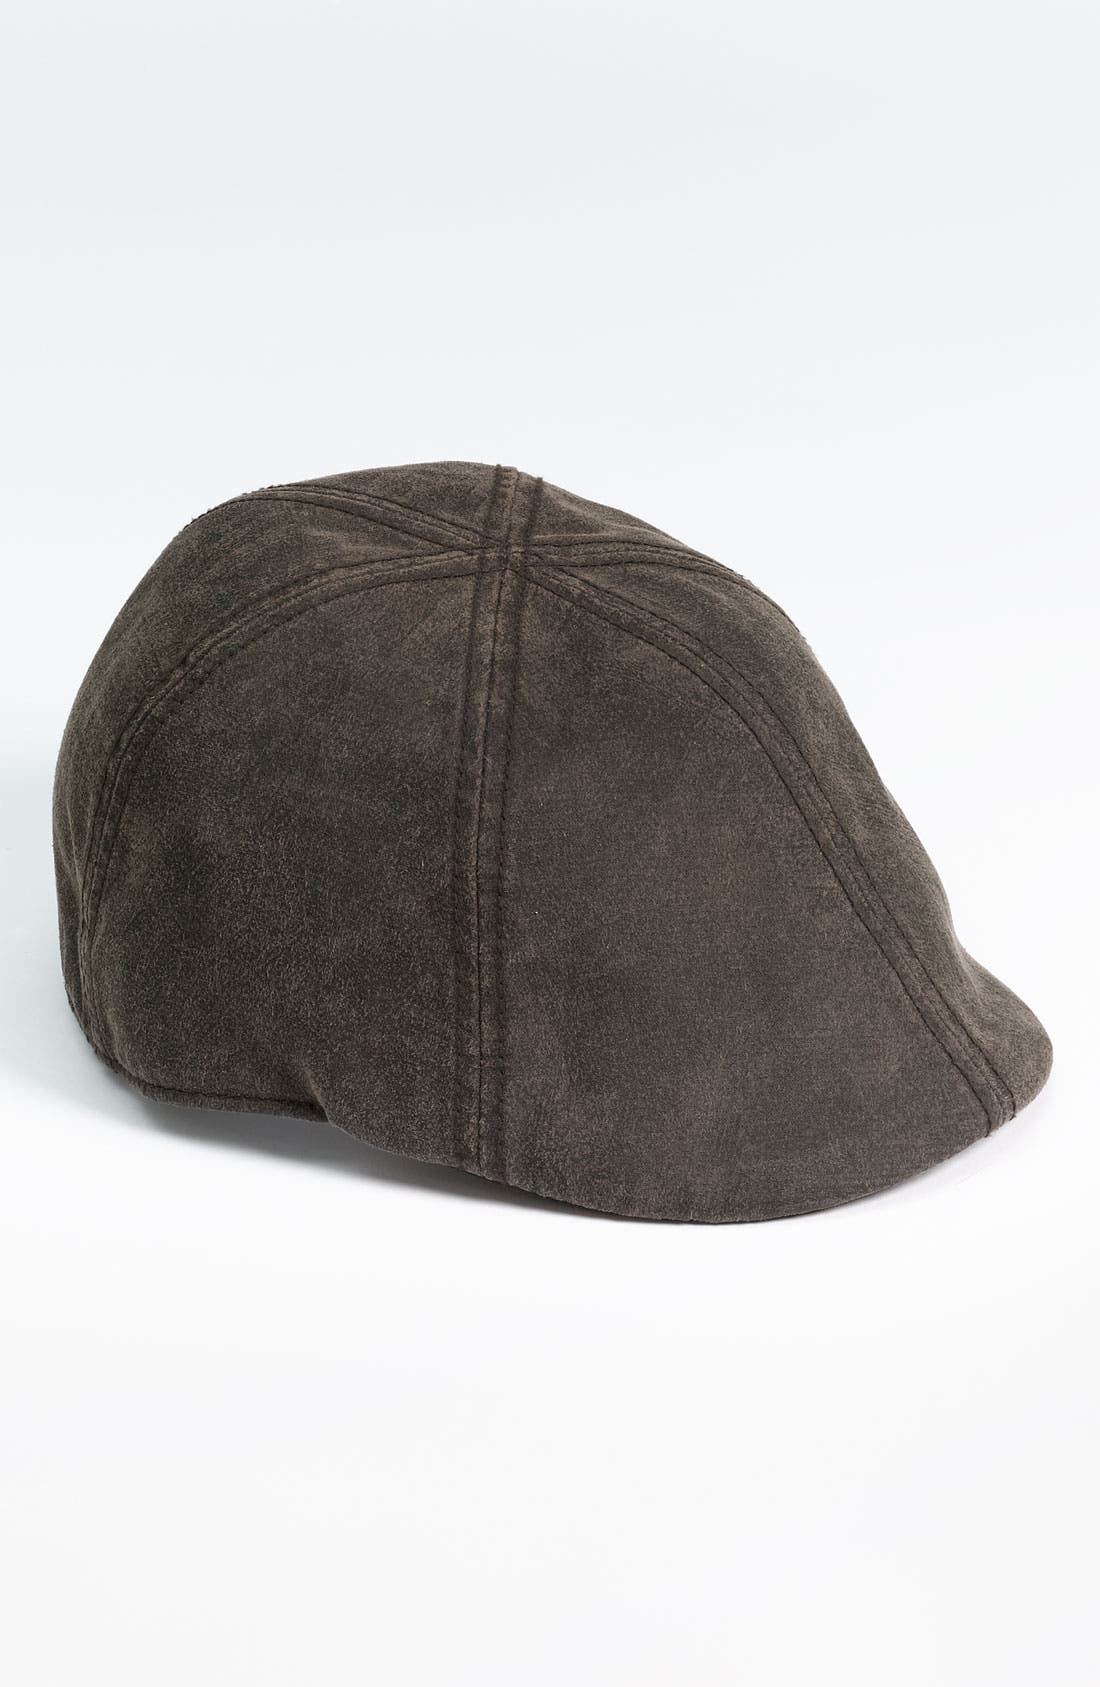 Main Image - Free Authority Faux Leather Duckbill Ivy Cap